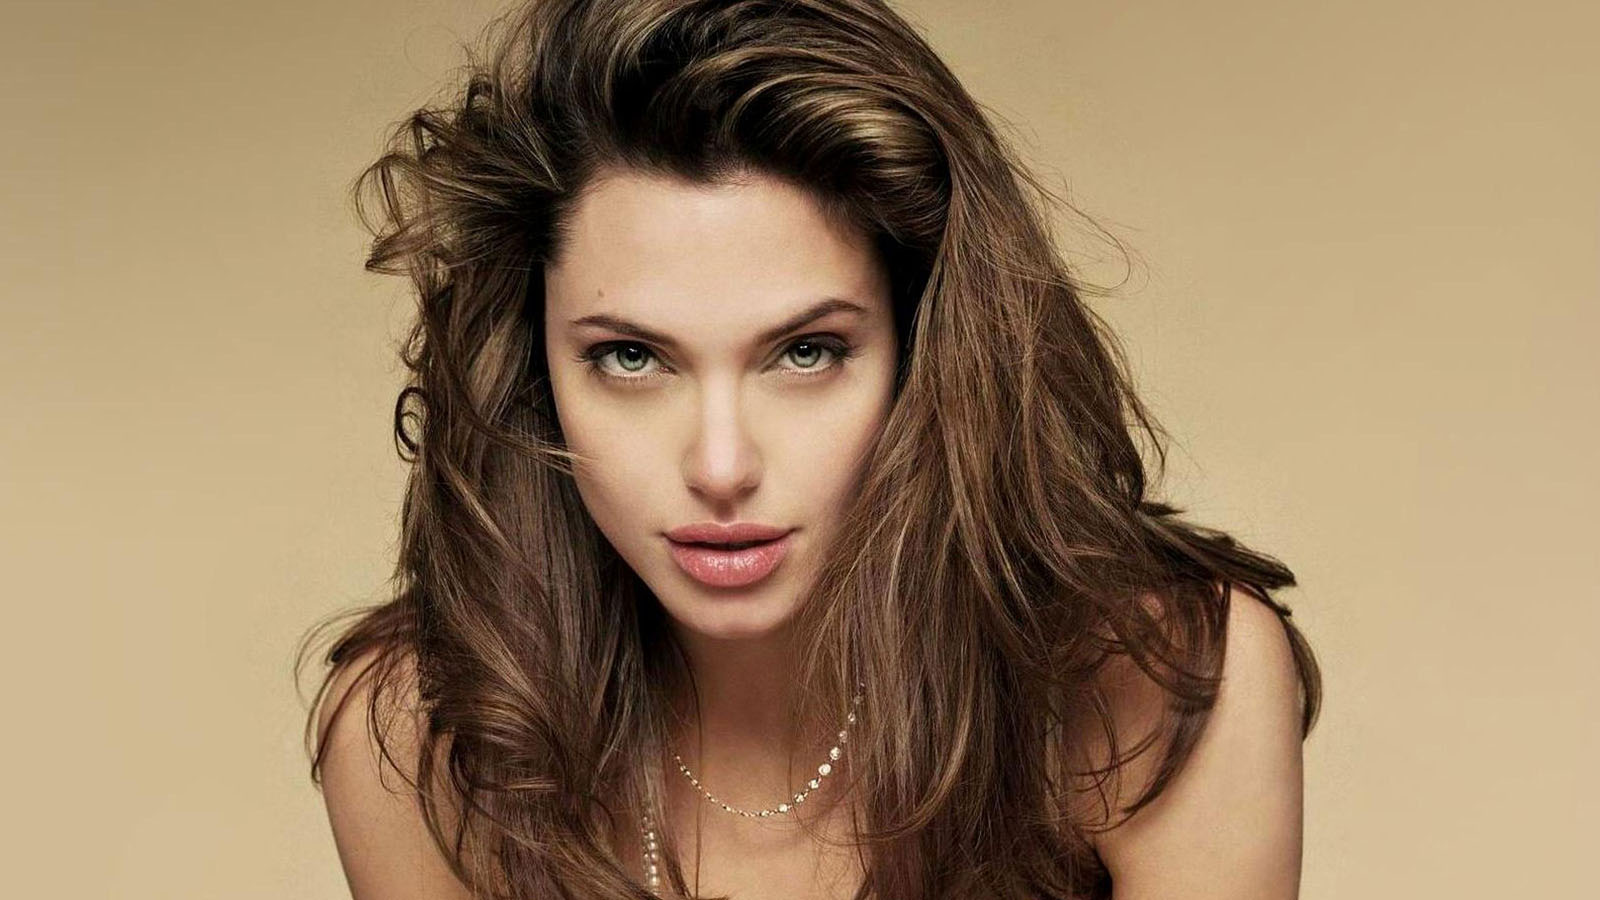 Angelina Jolie In Salt 1600x900 HD    Celebrities  HD Wallpaper